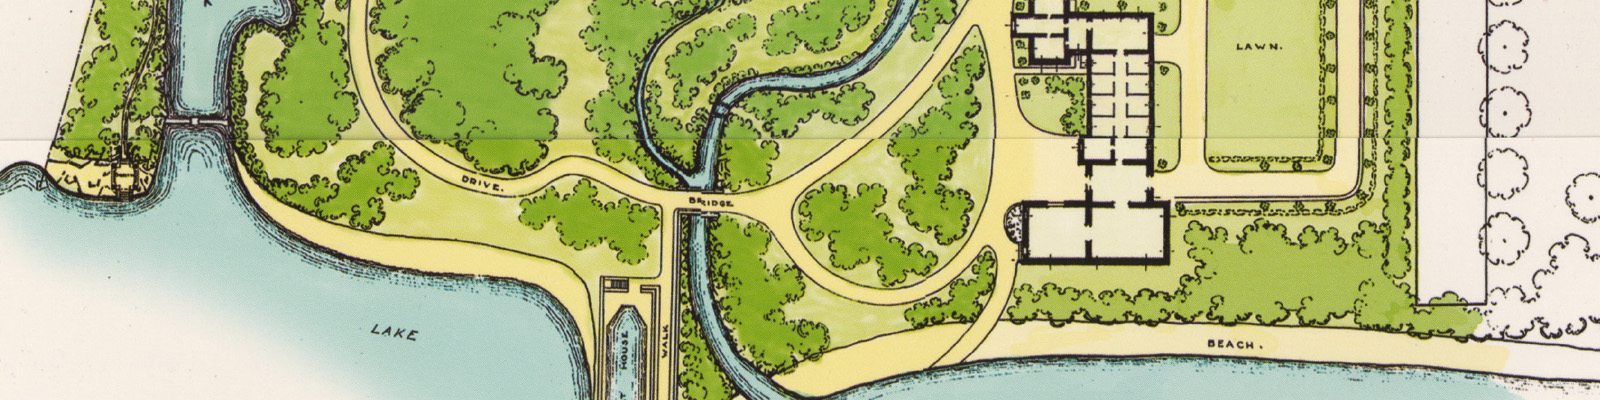 Map of the Grounds